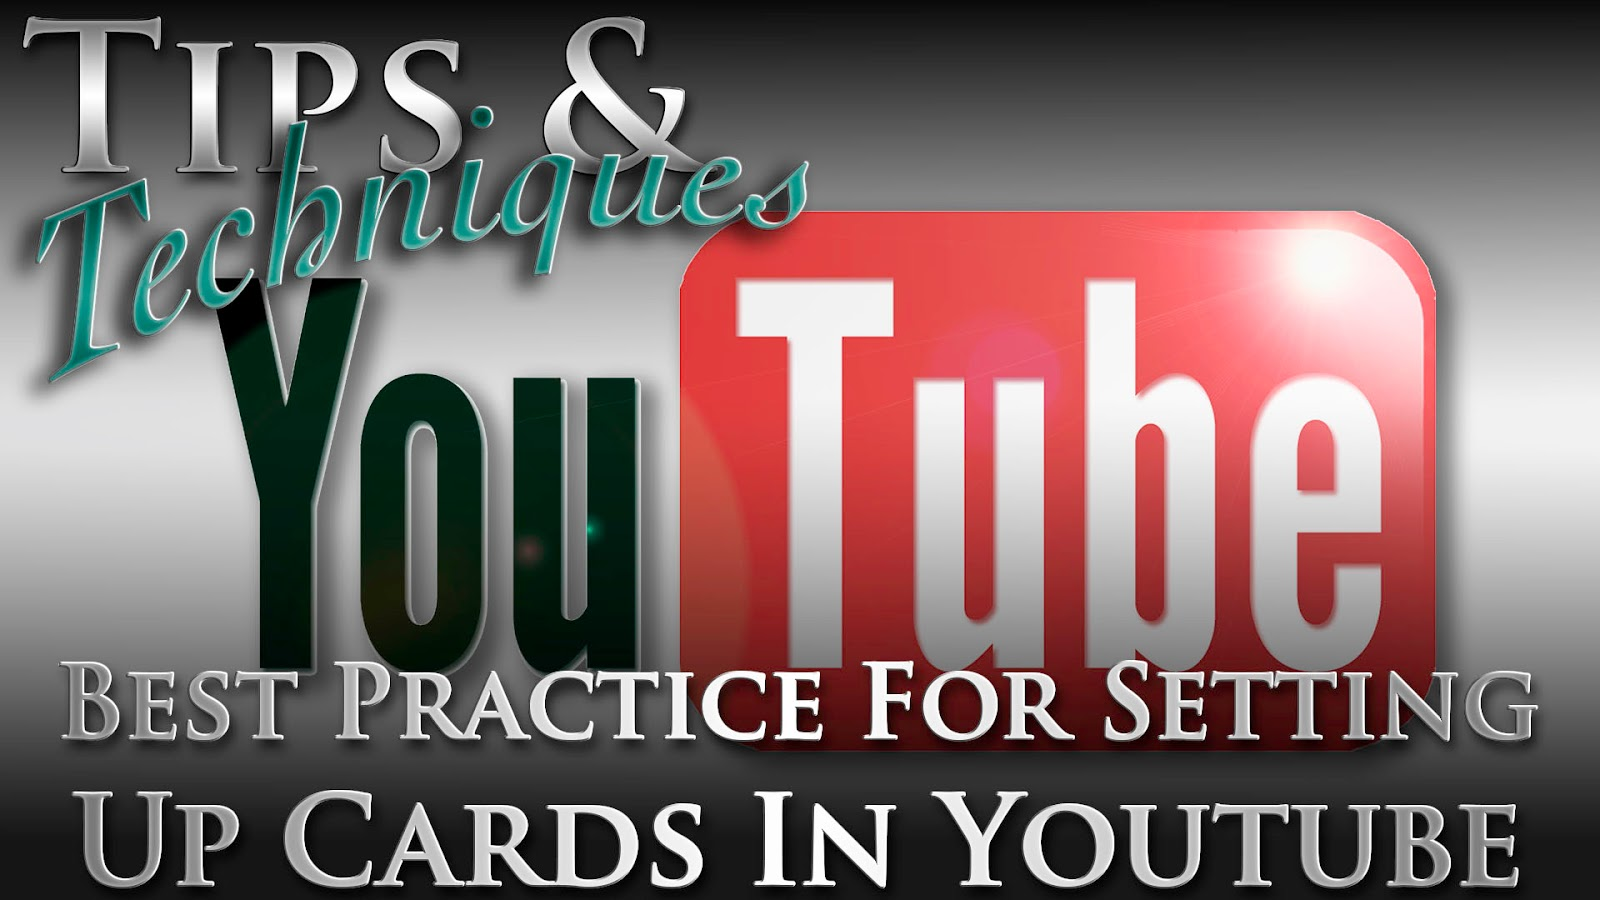 Learn The Best Practice For Setting Up Cards In YouTube | Tips & Techniques